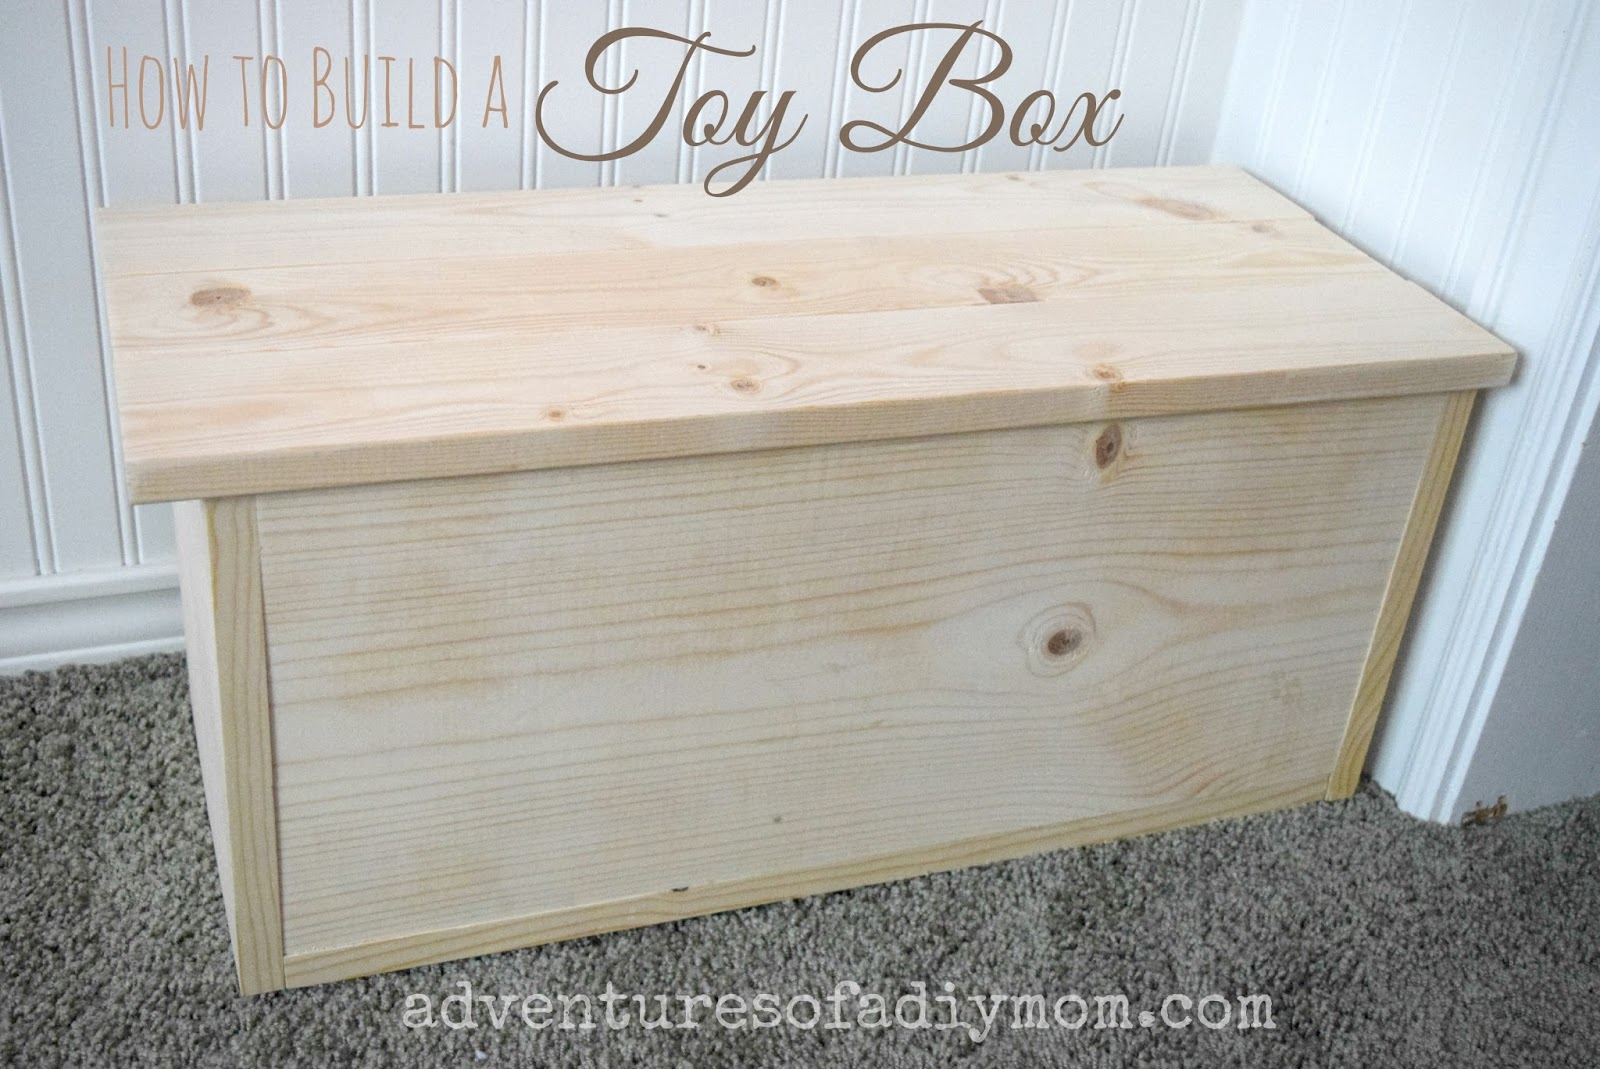 build your own wooden toy box | Quick Woodworking Projects